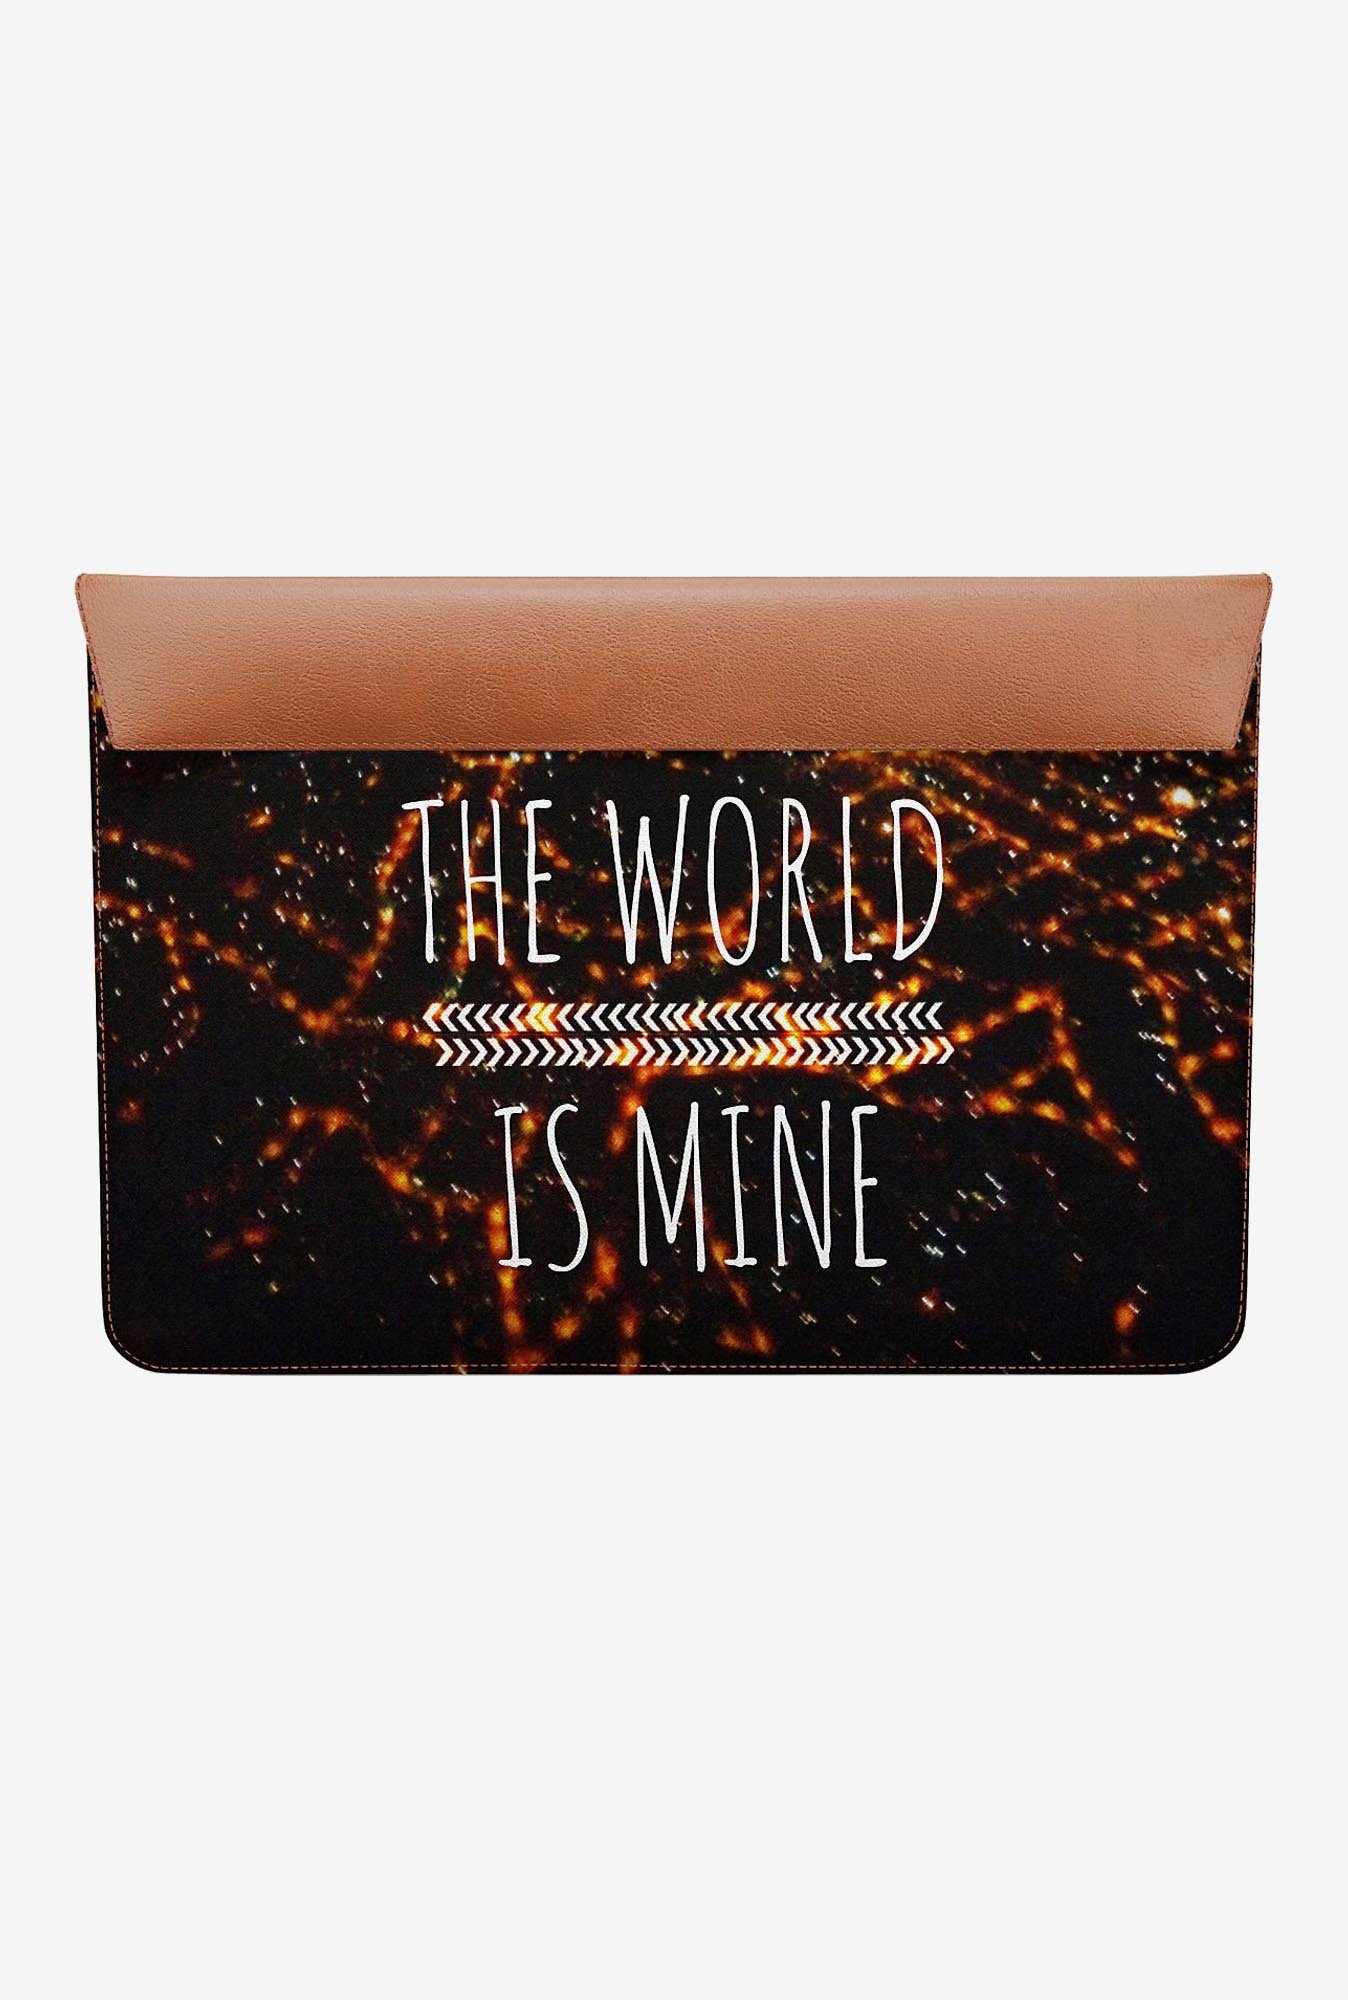 DailyObjects World is mine MacBook Air 13 Envelope Sleeve